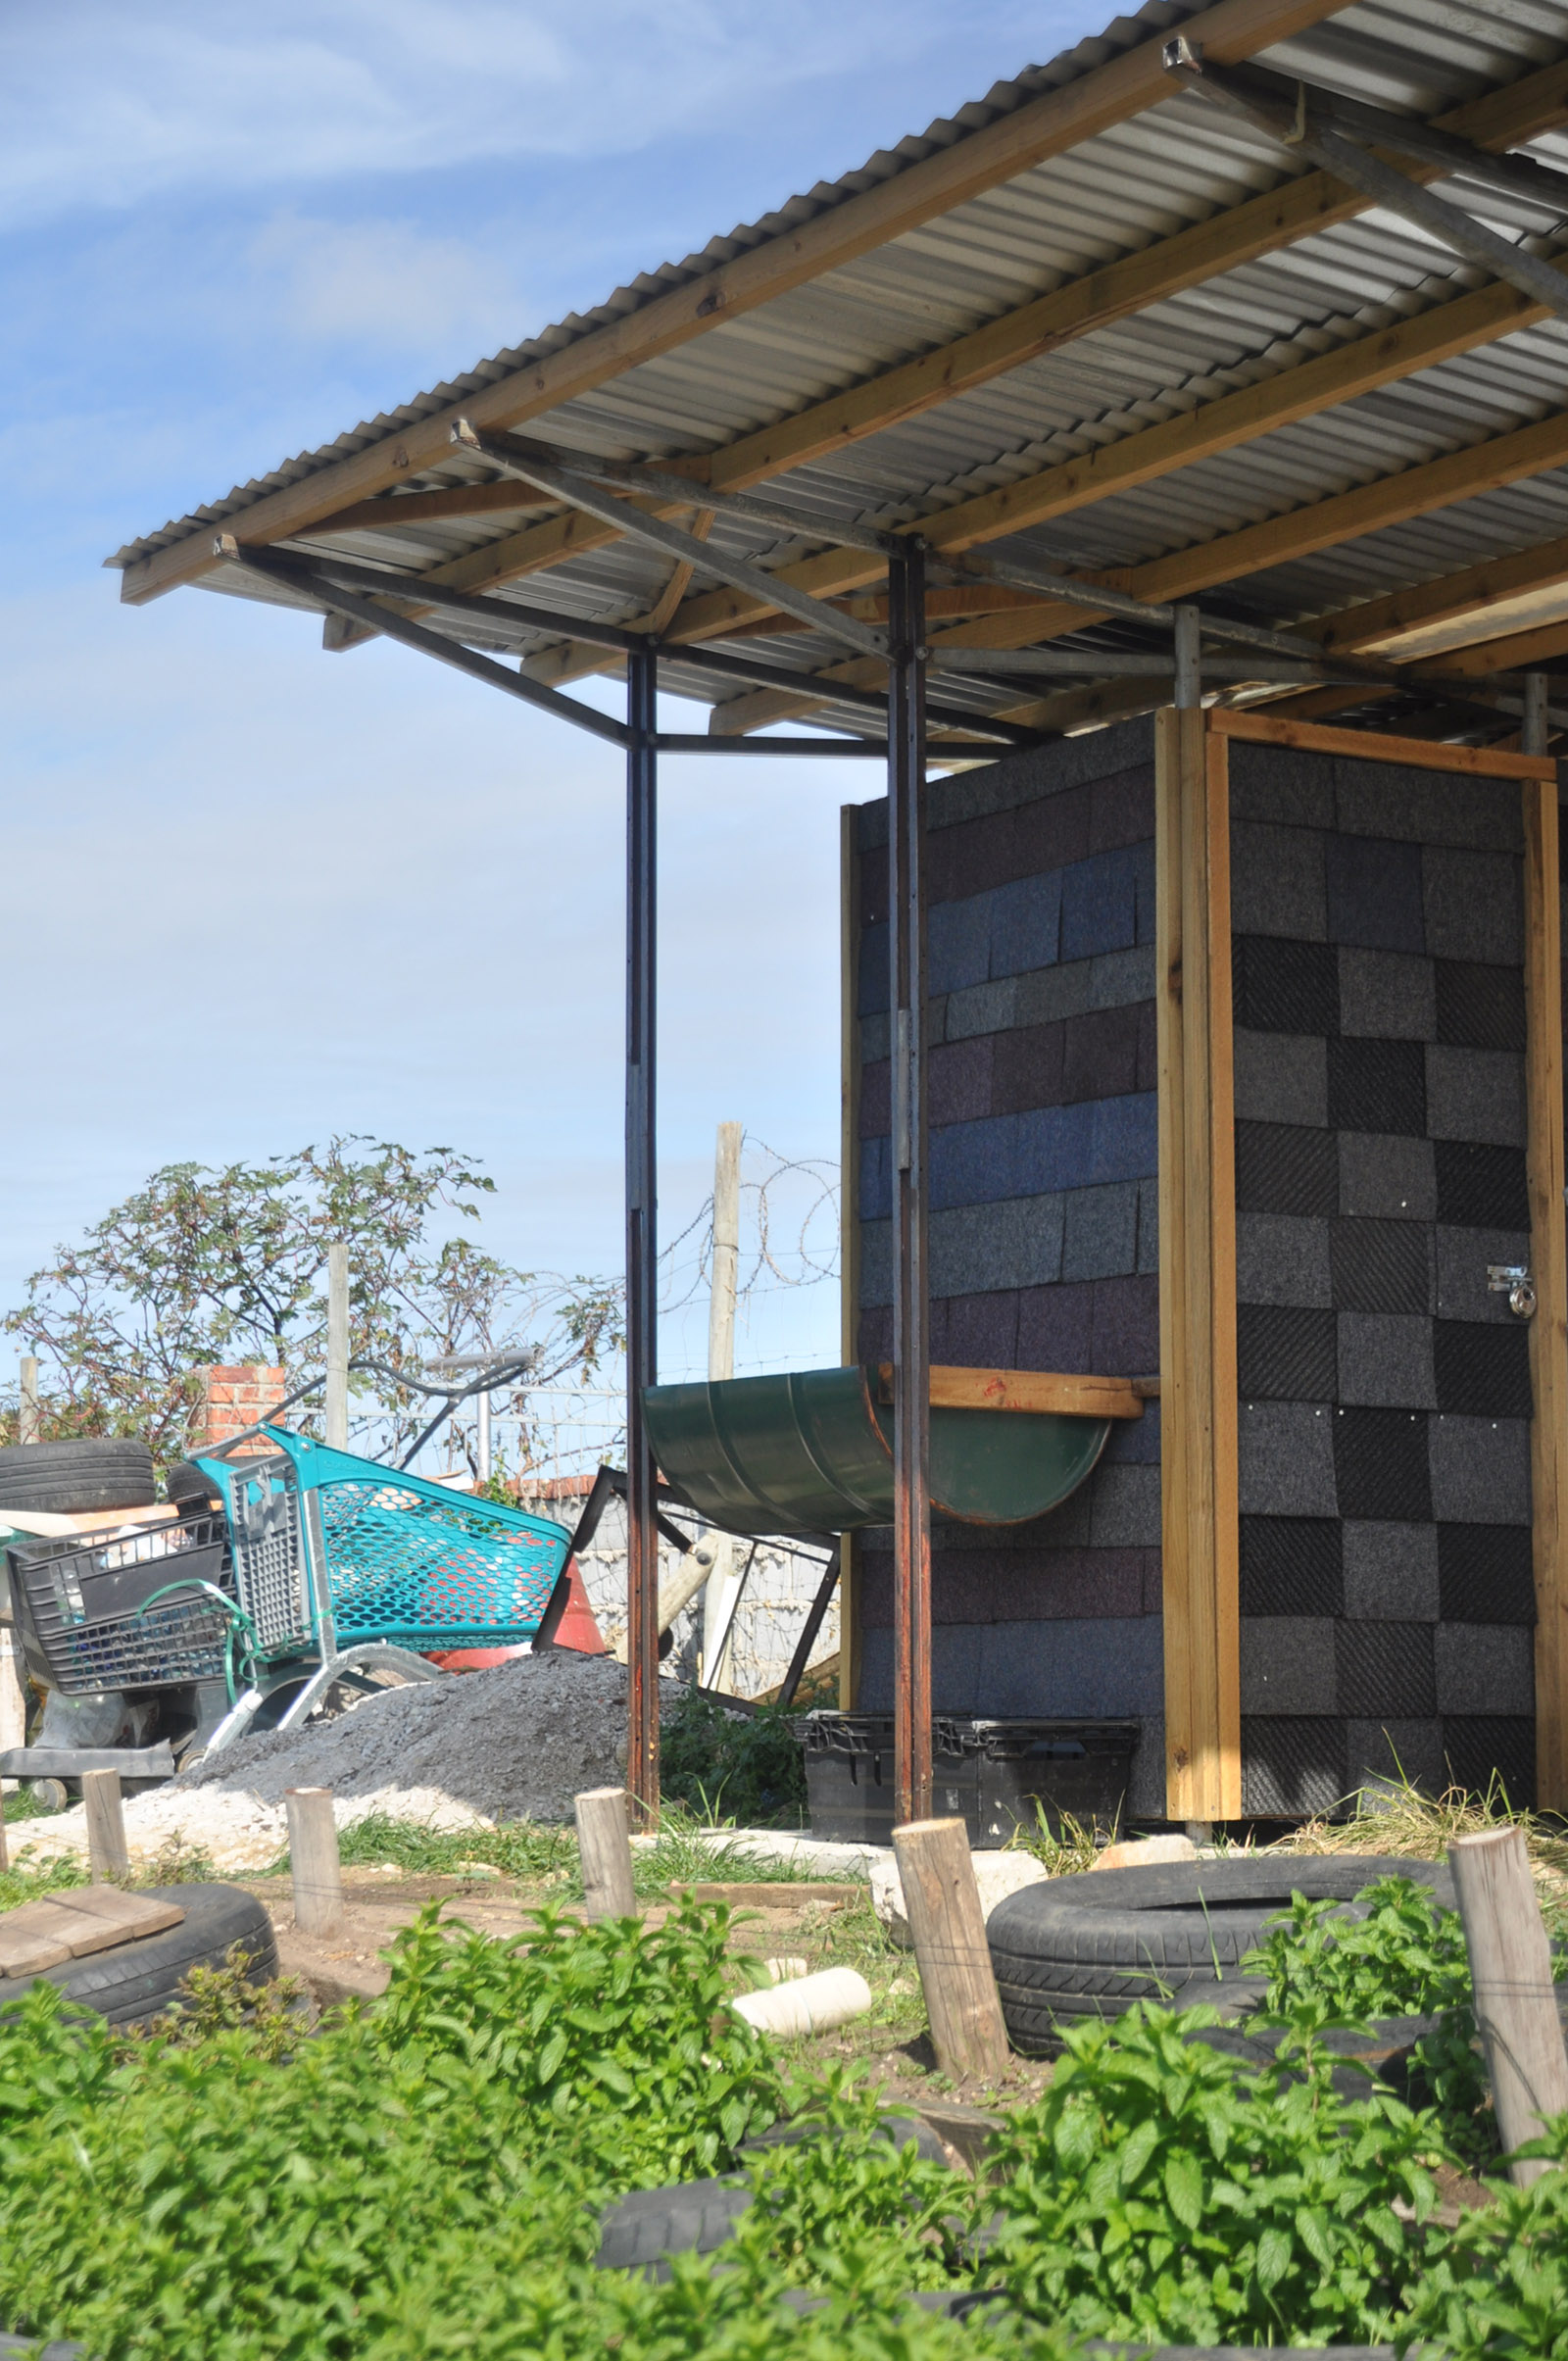 The sanitary block of the Lim'uphile Co-op in Walmer, Gqeberha, is clad in recycled carpet tiles